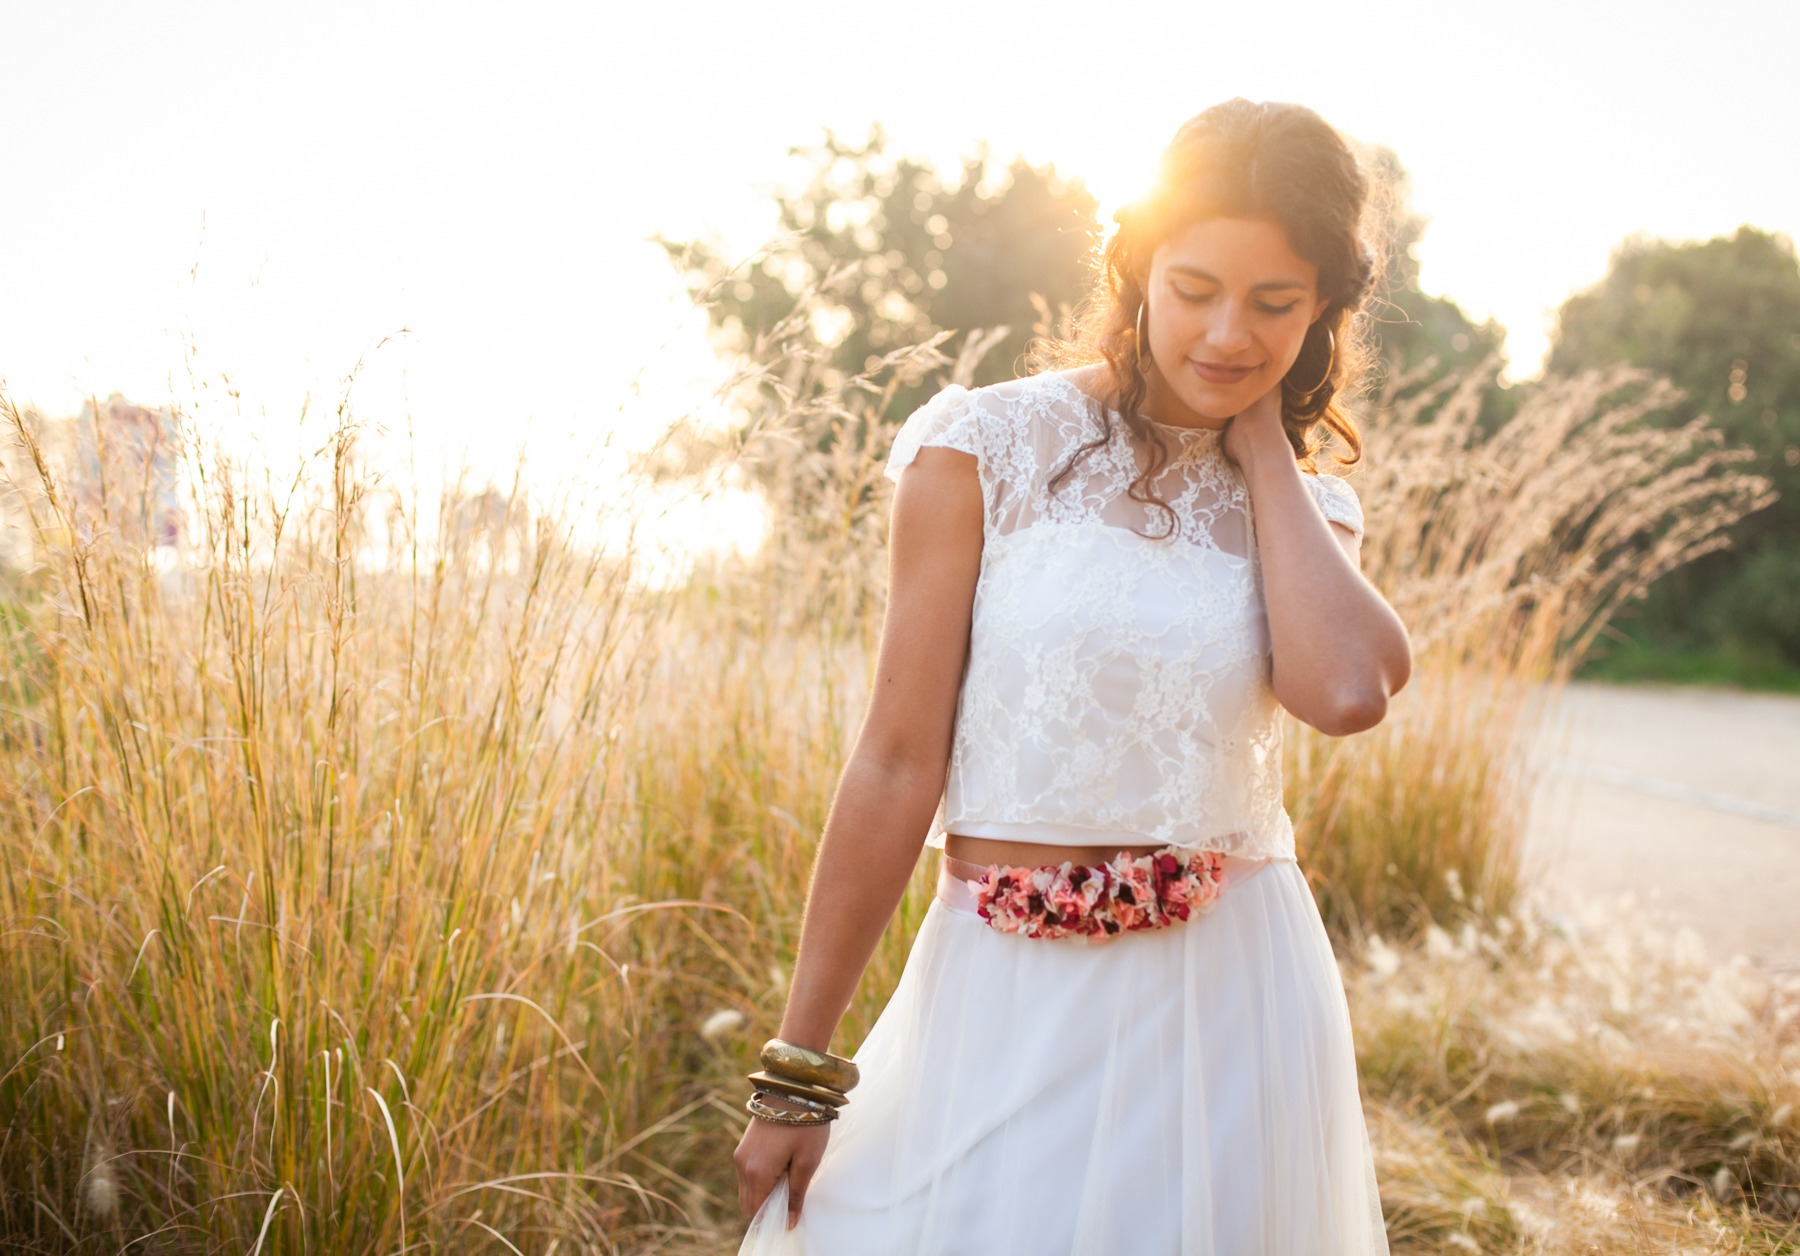 Bohemian two-piece wedding dress